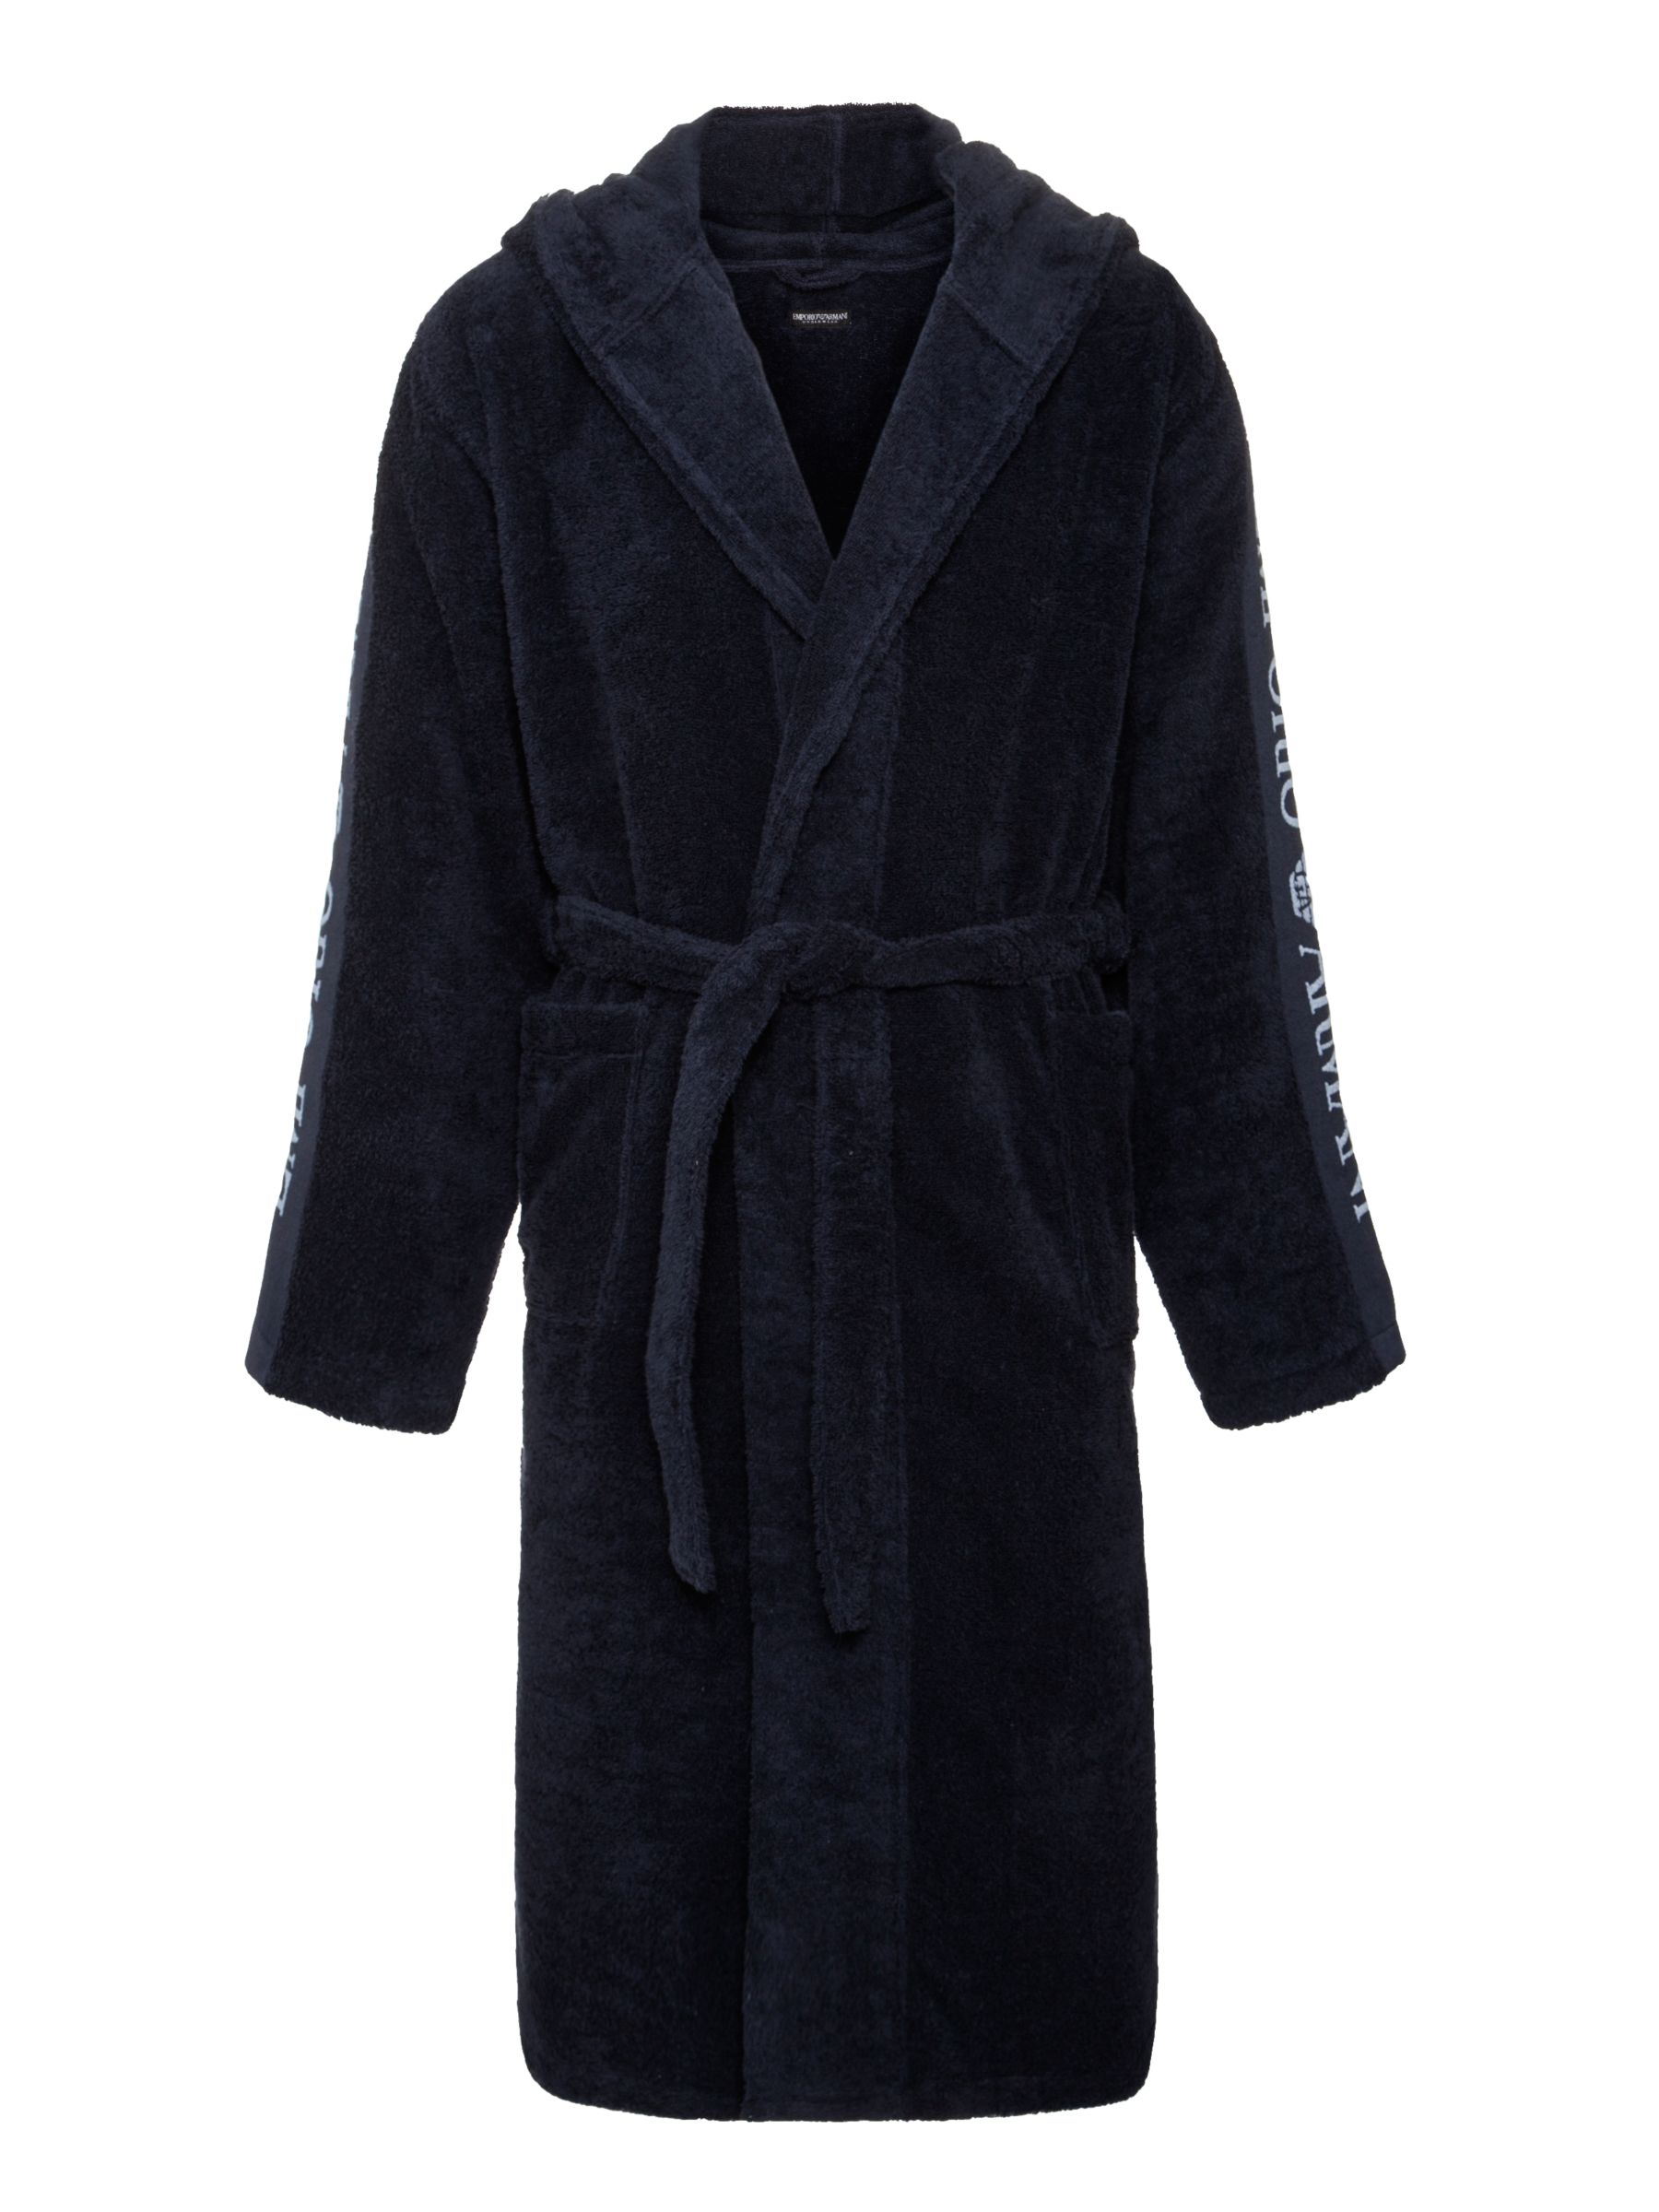 Emporio Armani Towel Robes, Navy